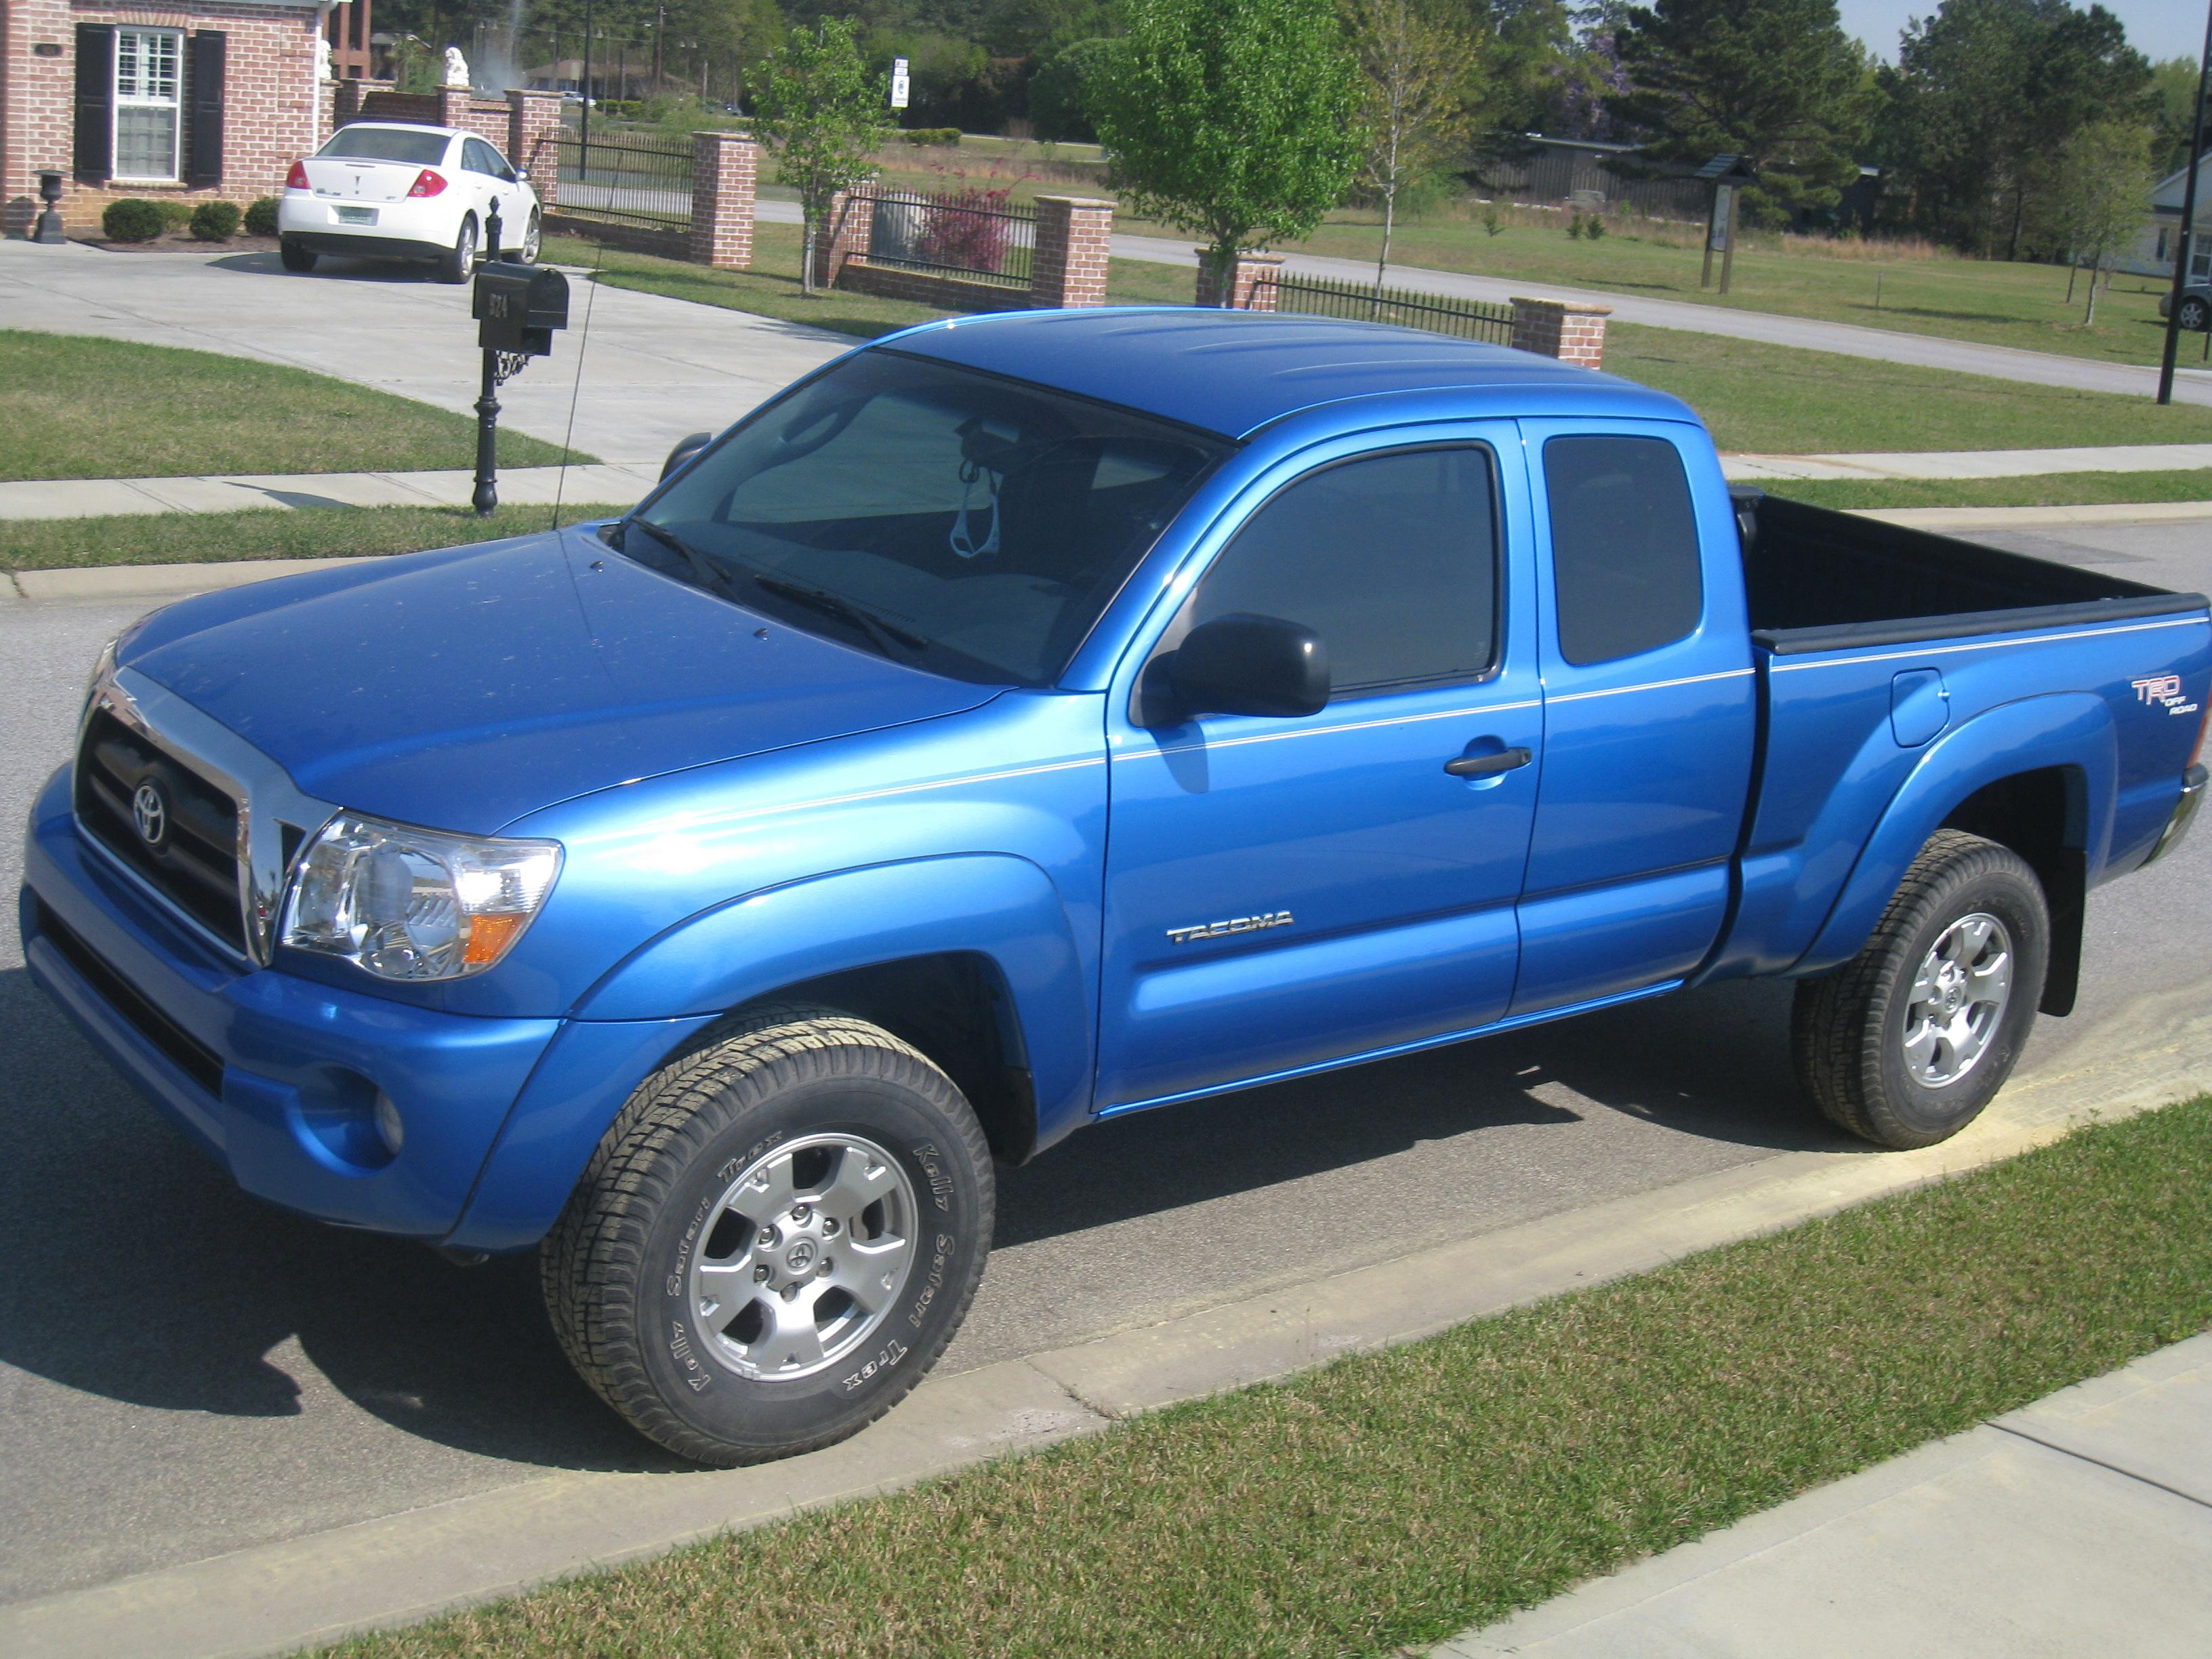 scdude3 2005 toyota tacoma access cab specs photos modification info at cardomain. Black Bedroom Furniture Sets. Home Design Ideas